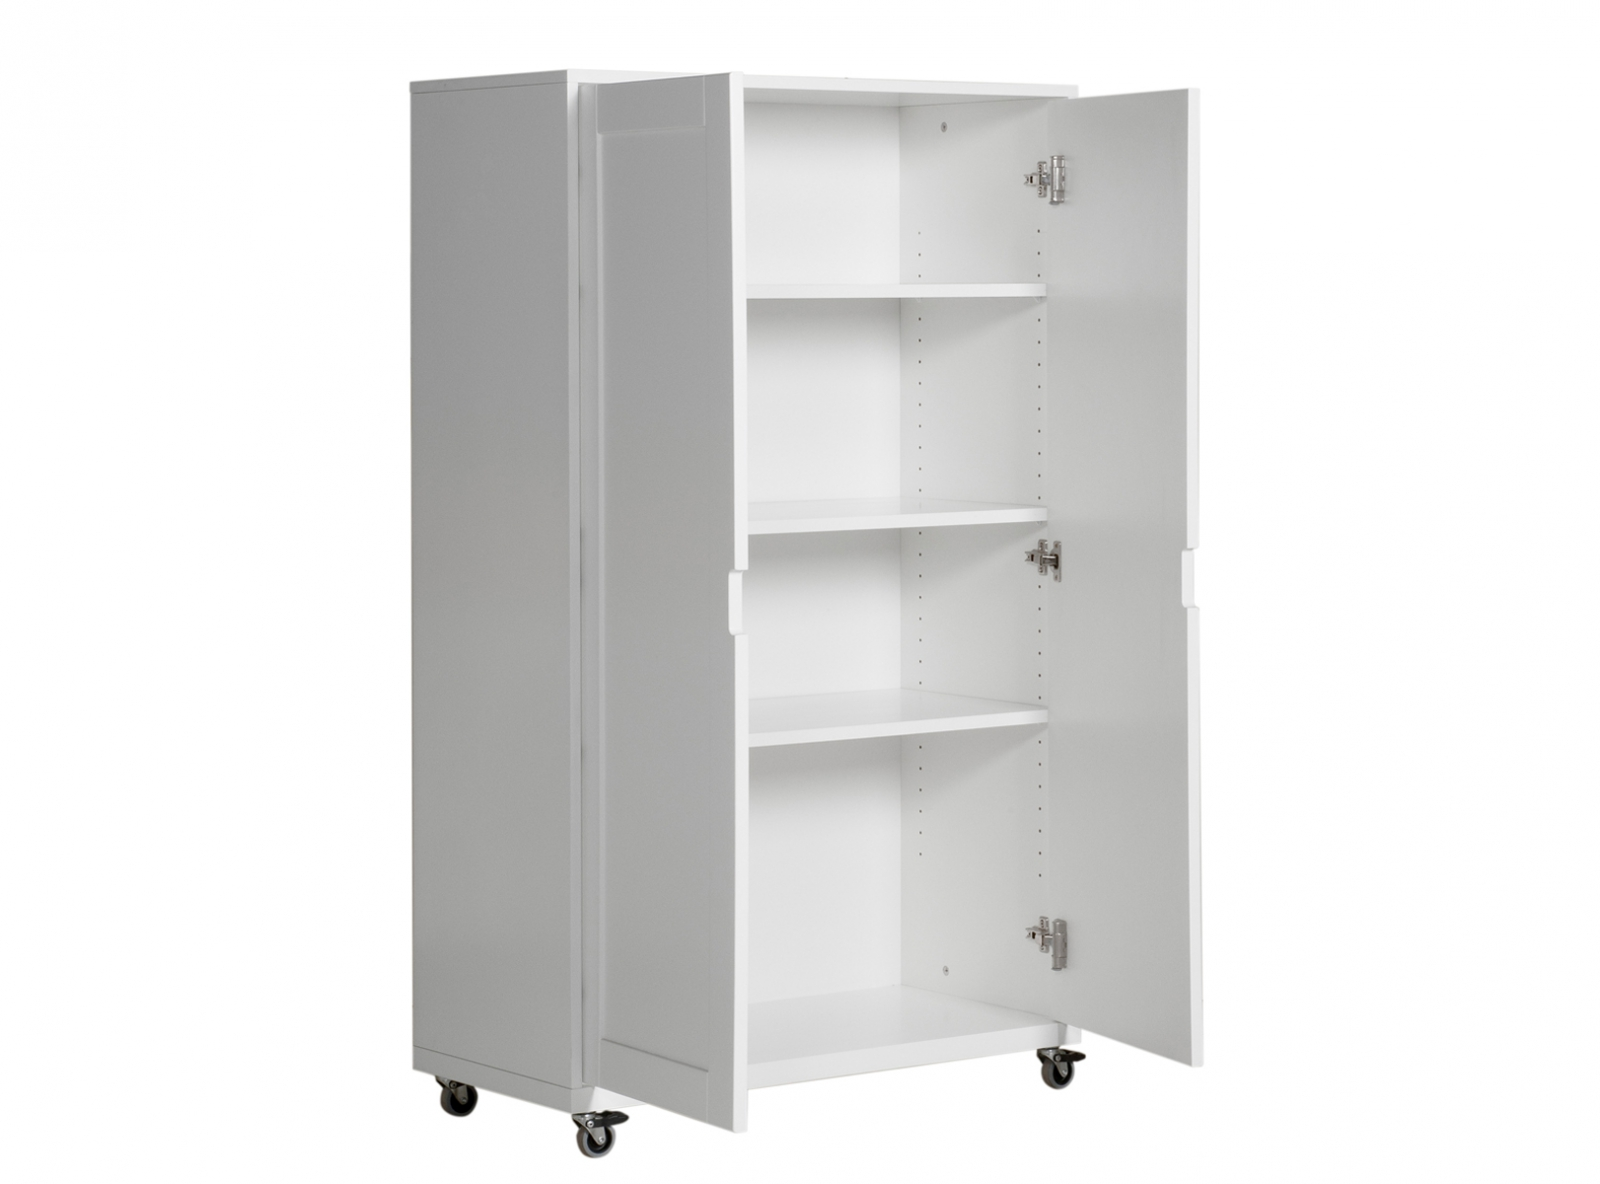 ellsworth floor tire target canadi bunnings storage cabinet canadian lockable and white fil door pinnacle whiteespresso galvanised locker wall oak riverridge neal shoe homestar